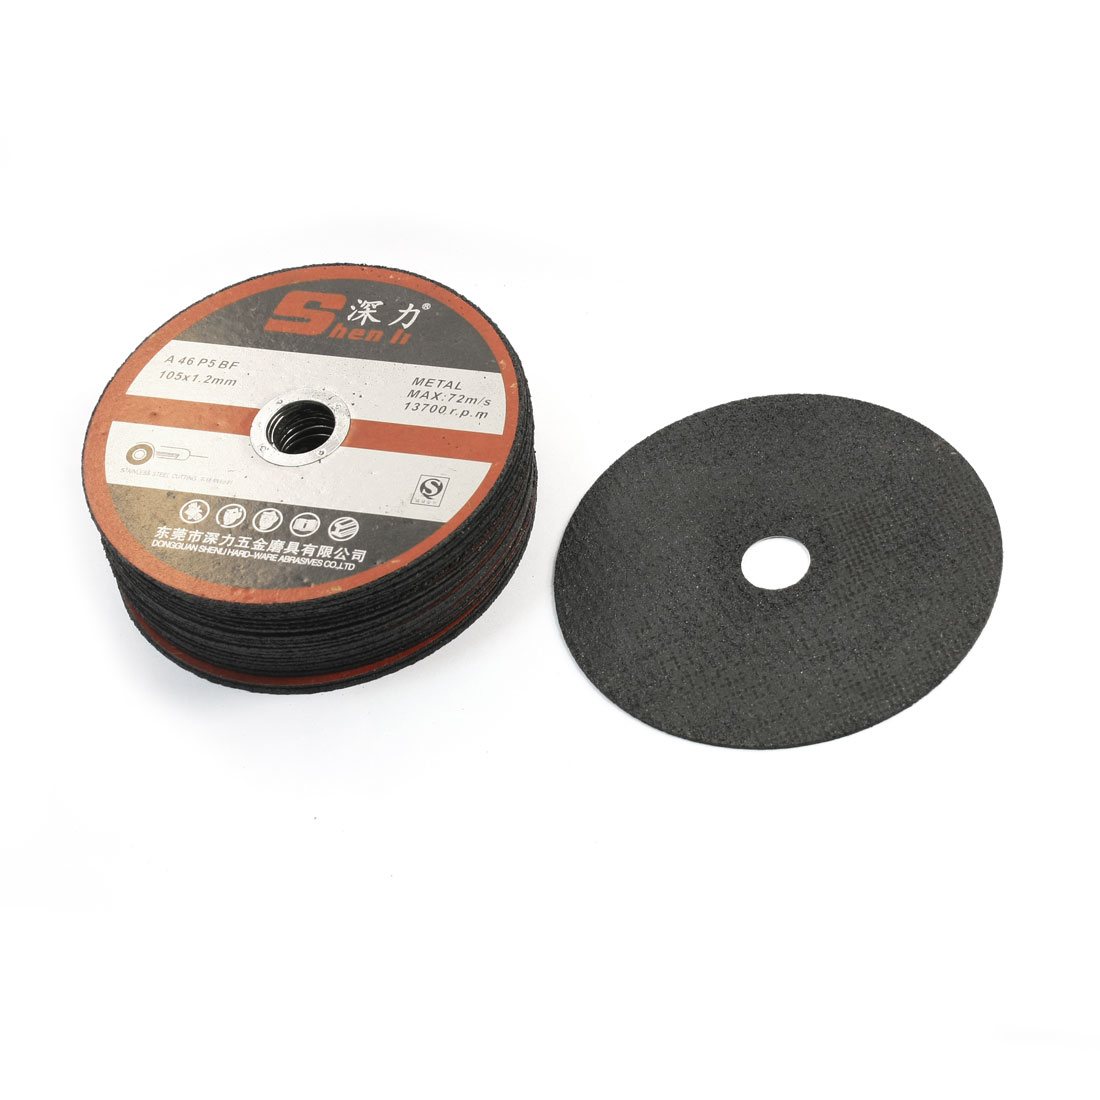 105mm-OD-16mm-Inner-Dia-13700RPM-72m-s-Speed-Polishing-Cut-Off-Wheel